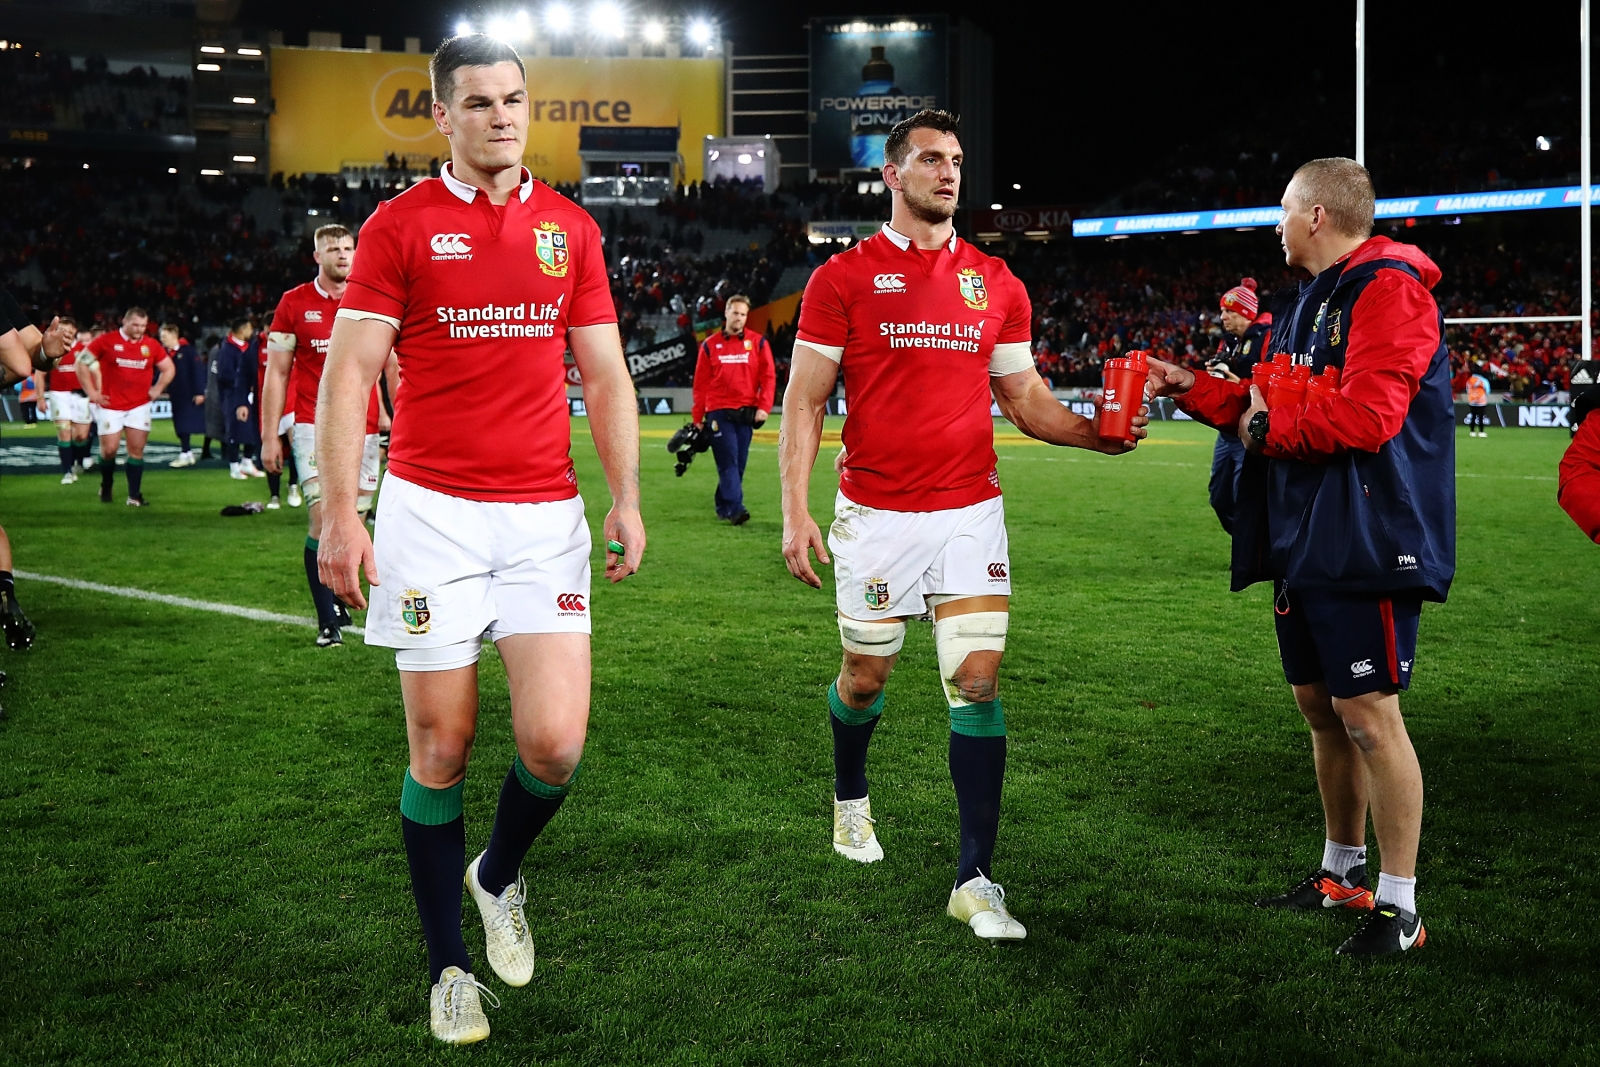 Johnny Sexton and Sam Warburton